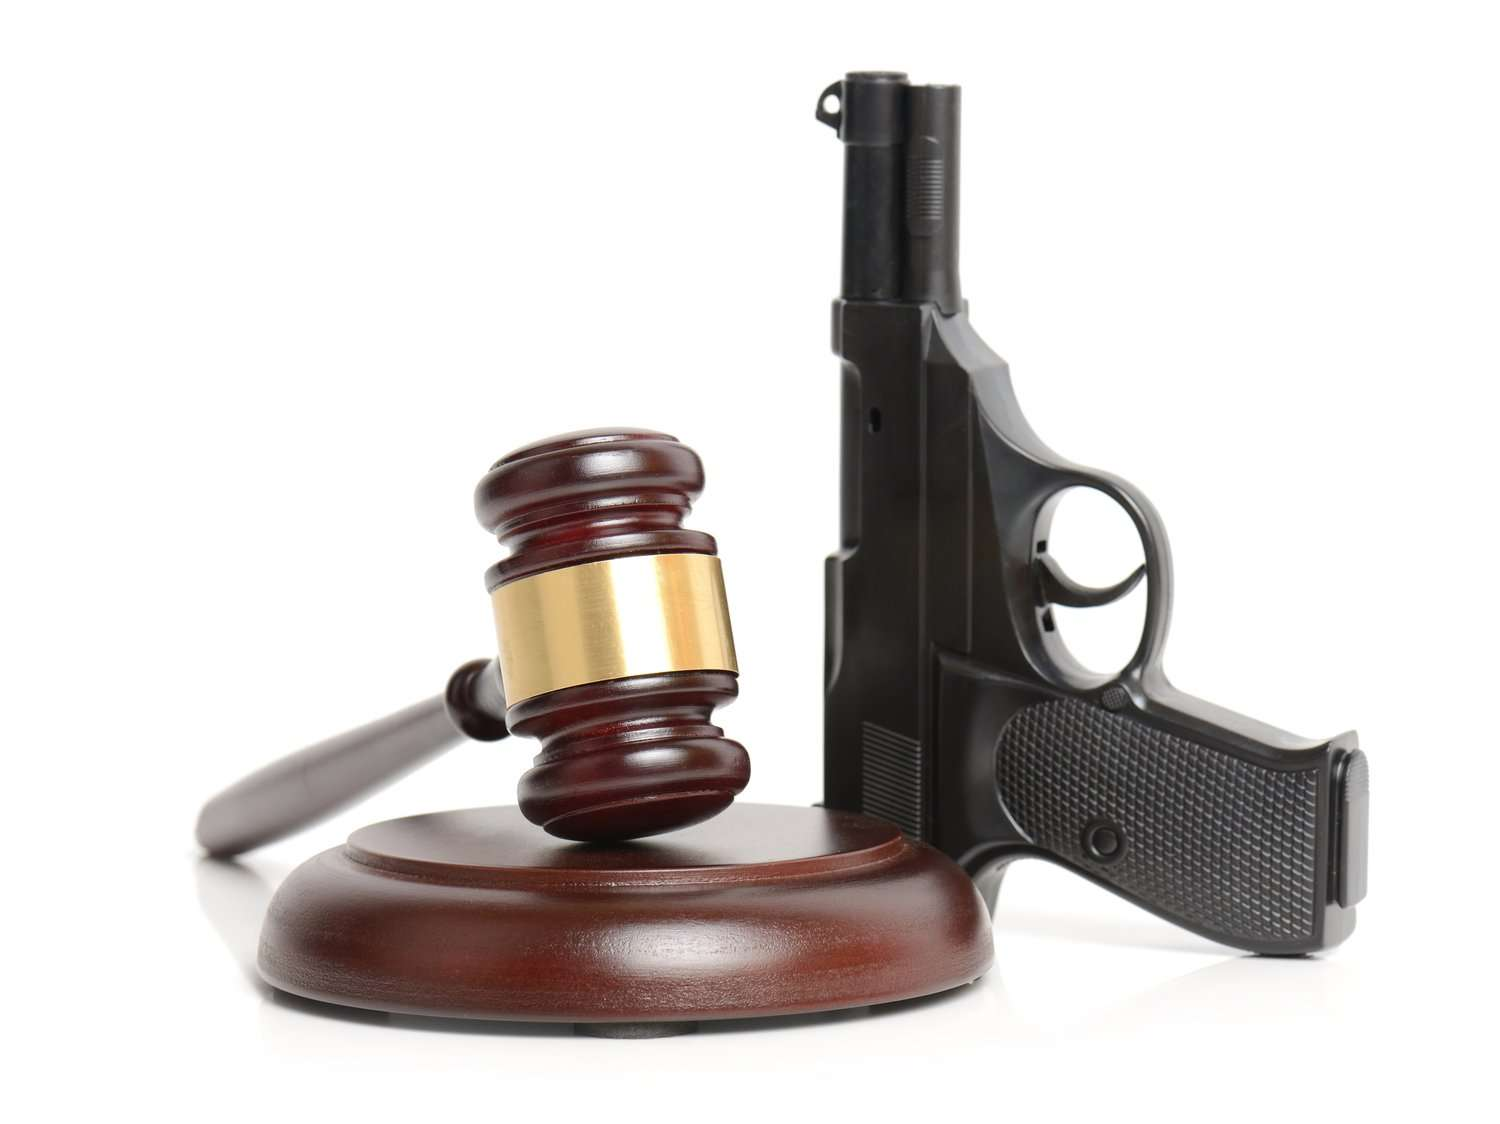 Lawyer for gun charges: criminal law and guns